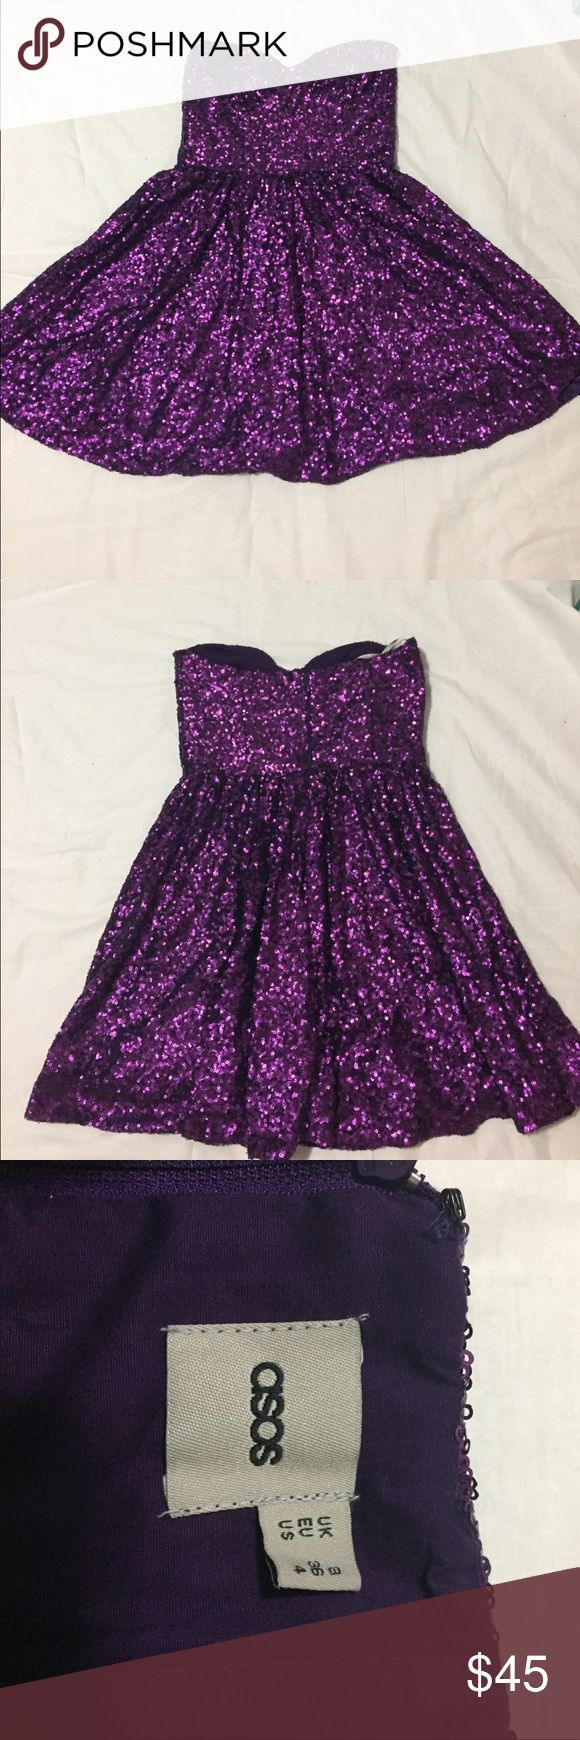 ASOS Purple Sequin Party Mini Dress Fabulous party dress! Perfect for homecoming or going out for some dancing! Excellent used condition! Skirt length is 16.5 inches. Fully lined. Waist is 13 inches. Full dress length is 25 inches. US size 4. Smoke free, pet free home. Ship same or next day. Bundle 2+ for 10% off! Feel free to ask questions or make an offer! Asos Dresses Strapless